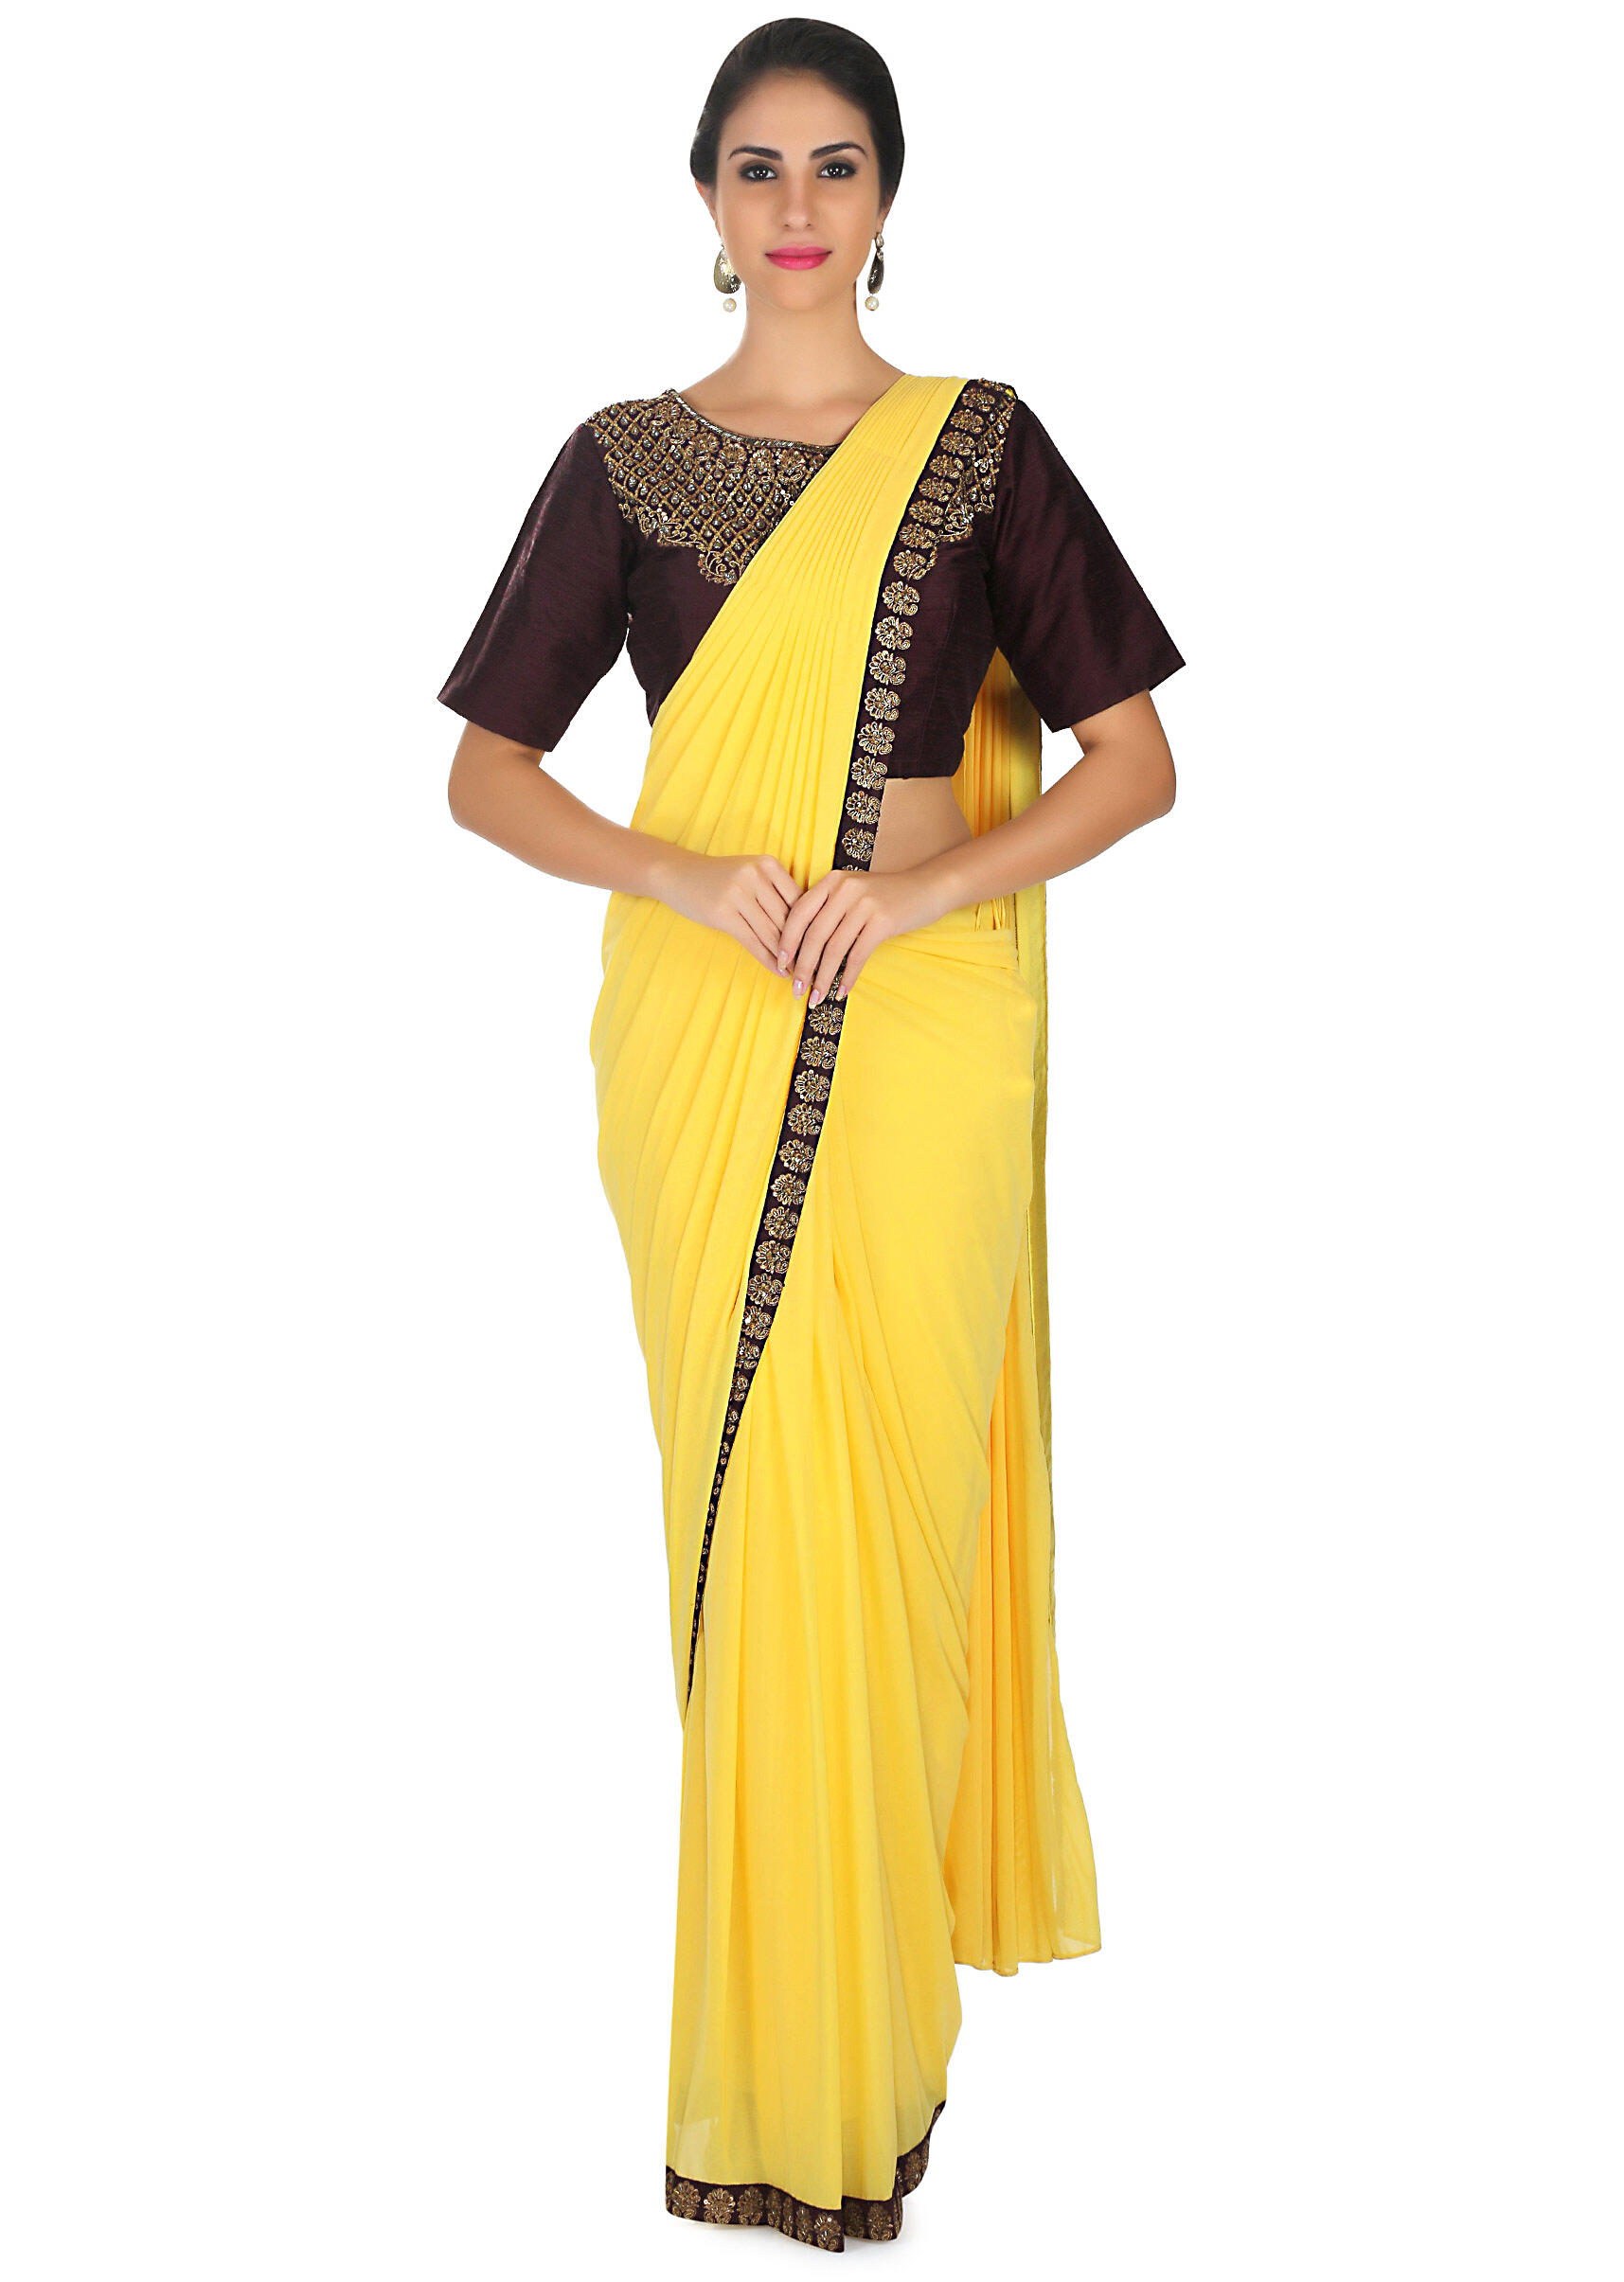 fec16b1822f5e Bright yellow pre stitched saree with brown ready embroidered blouse only  on KalkiMore Detail